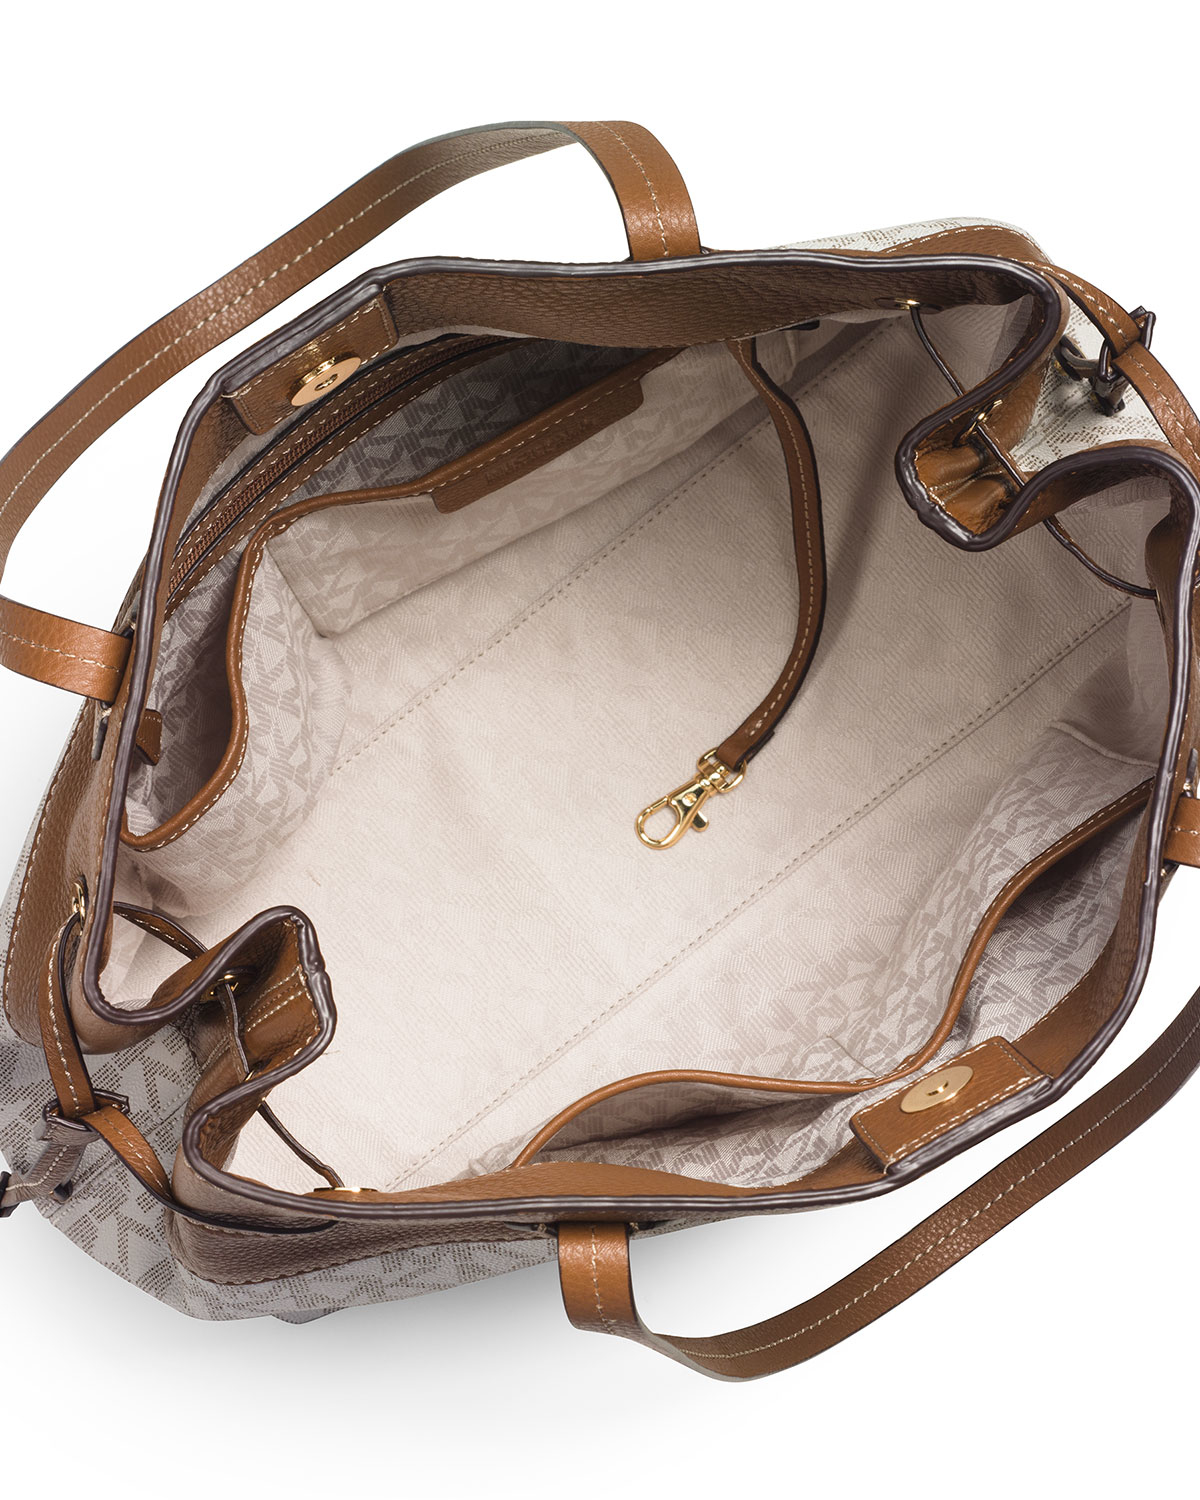 75862fcbc6fc Gallery. Previously sold at: Bloomingdale's, Neiman Marcus · Women's Michael  Kors Marina